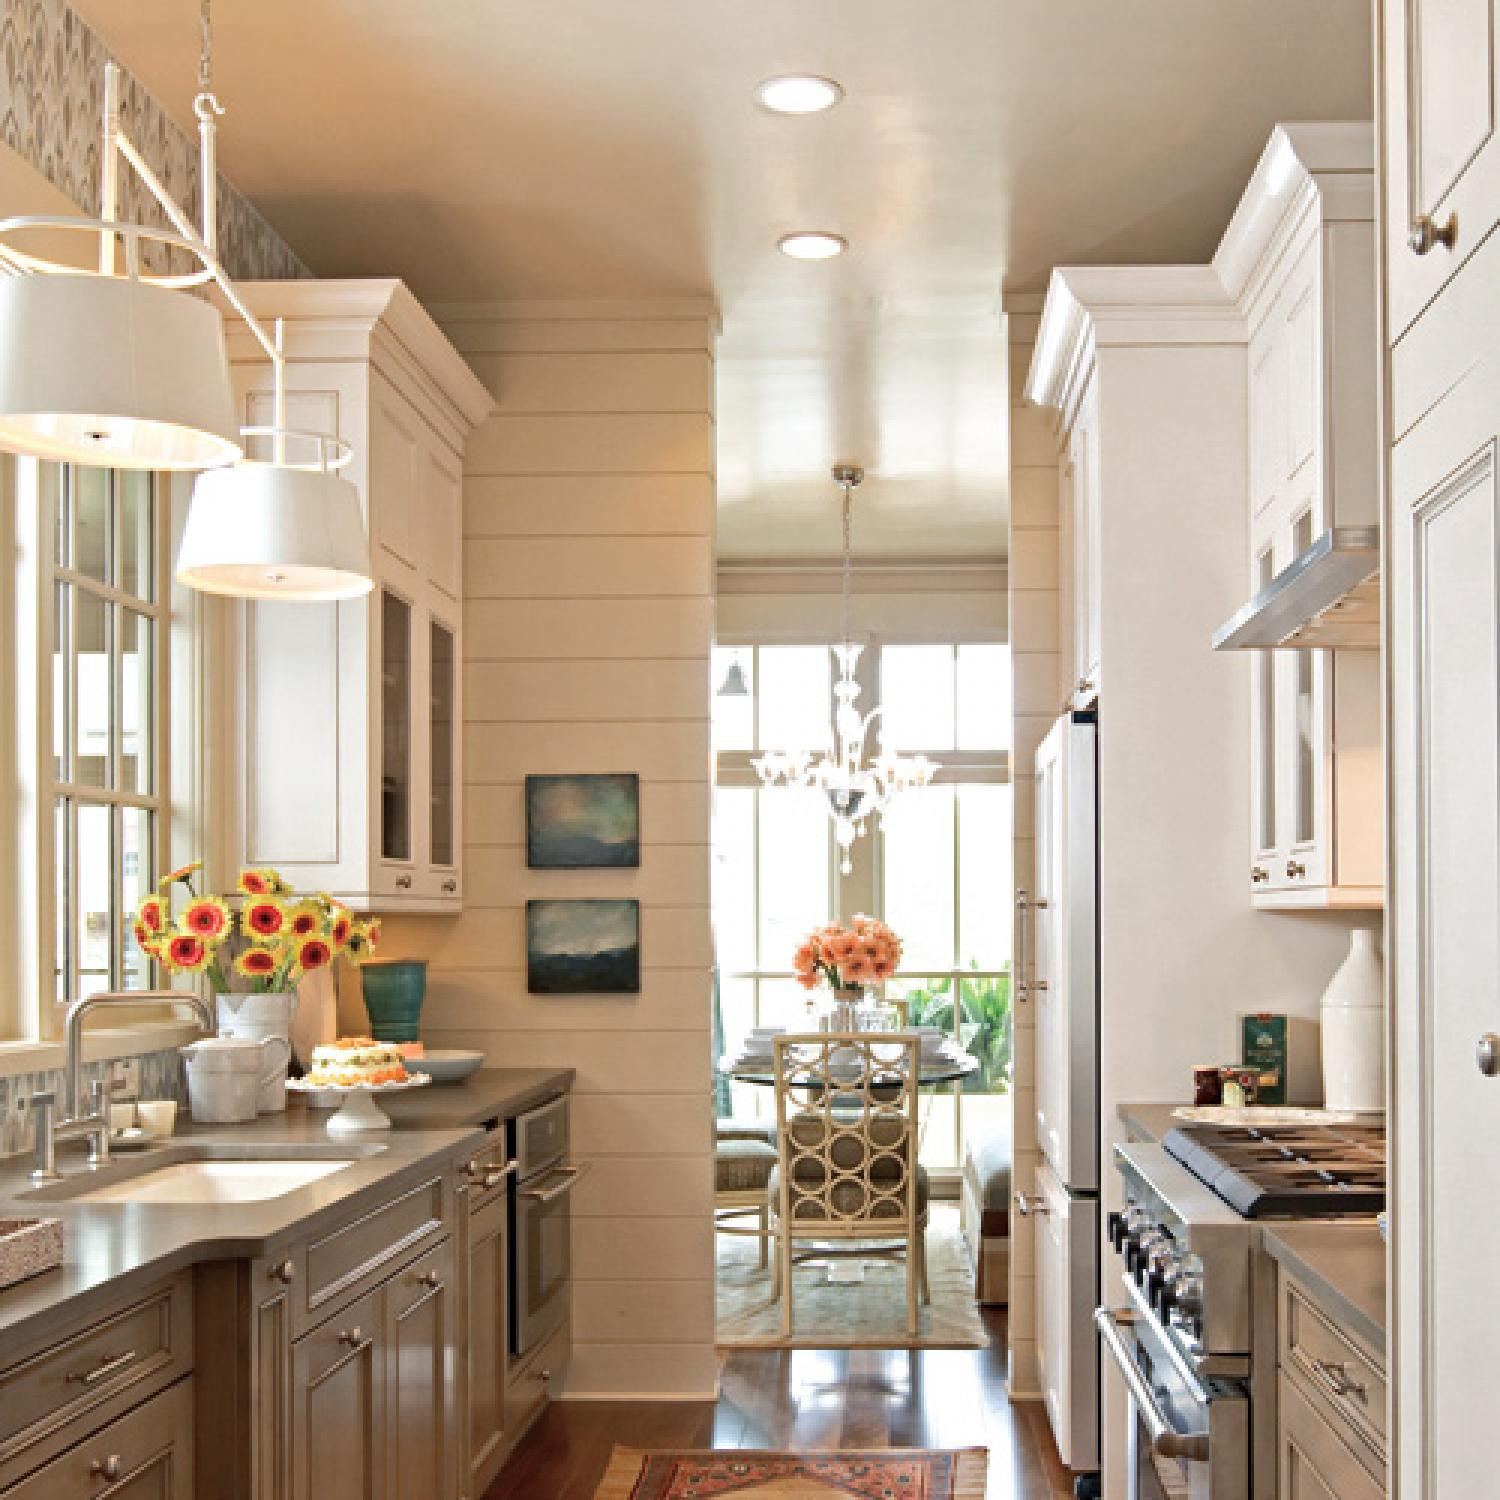 Designing Kitchens New in Home Decorating Ideas